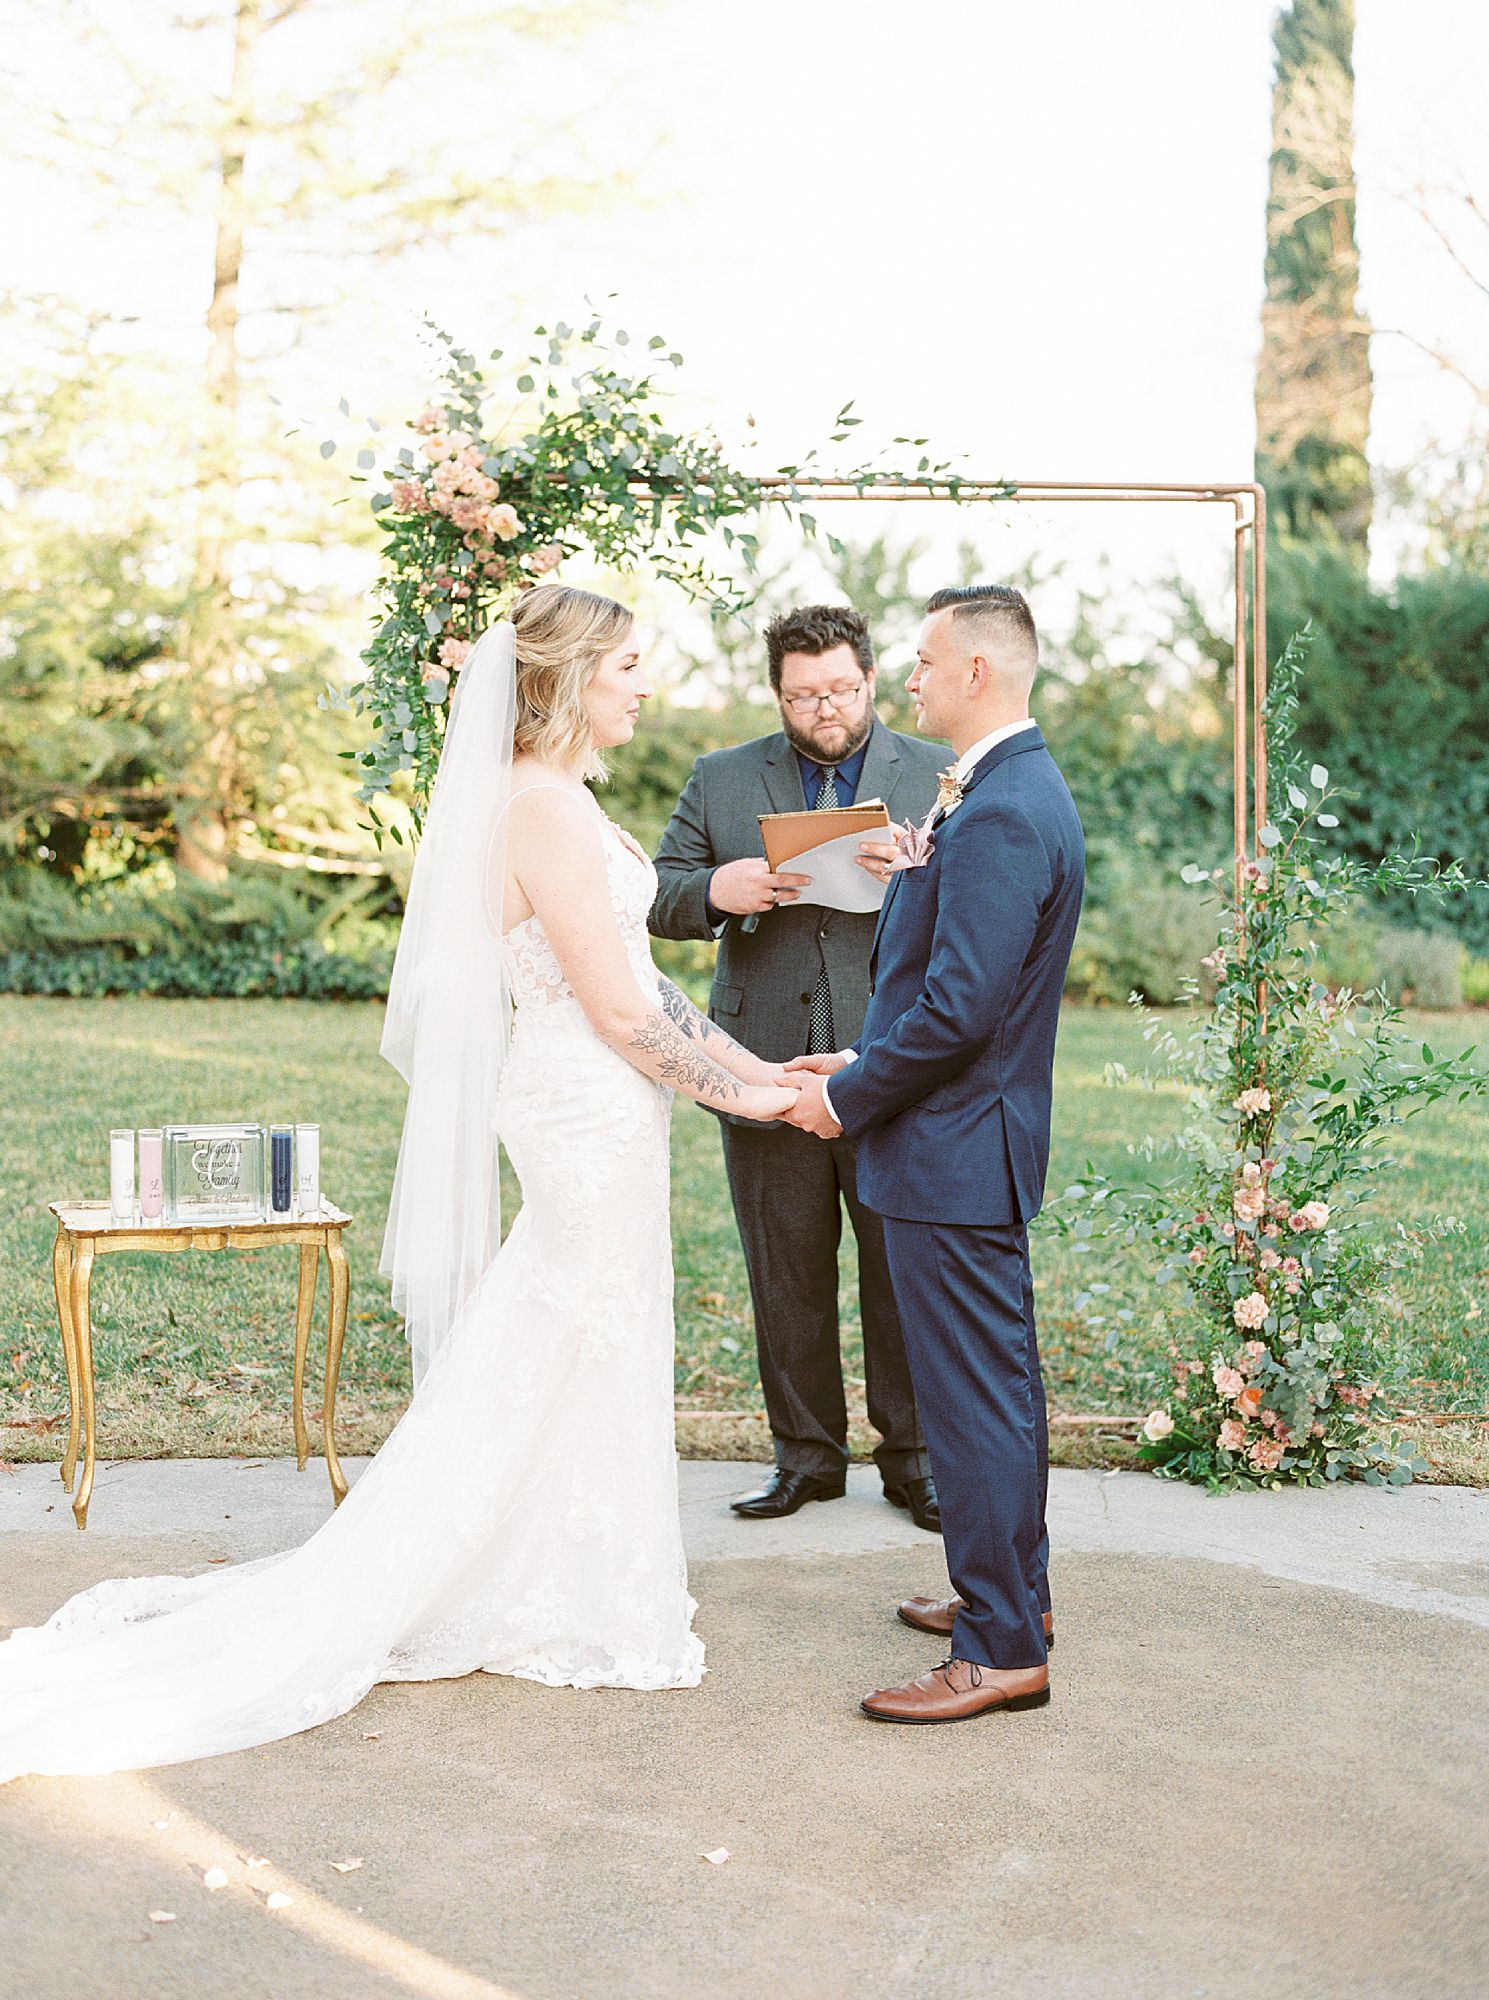 Inn at Park Winters Wedding - Lindsay and Shane - Ashley Baumgartner - Park Winters Wedding Photographer - Sacramento Wedding Photographer_0059.jpg